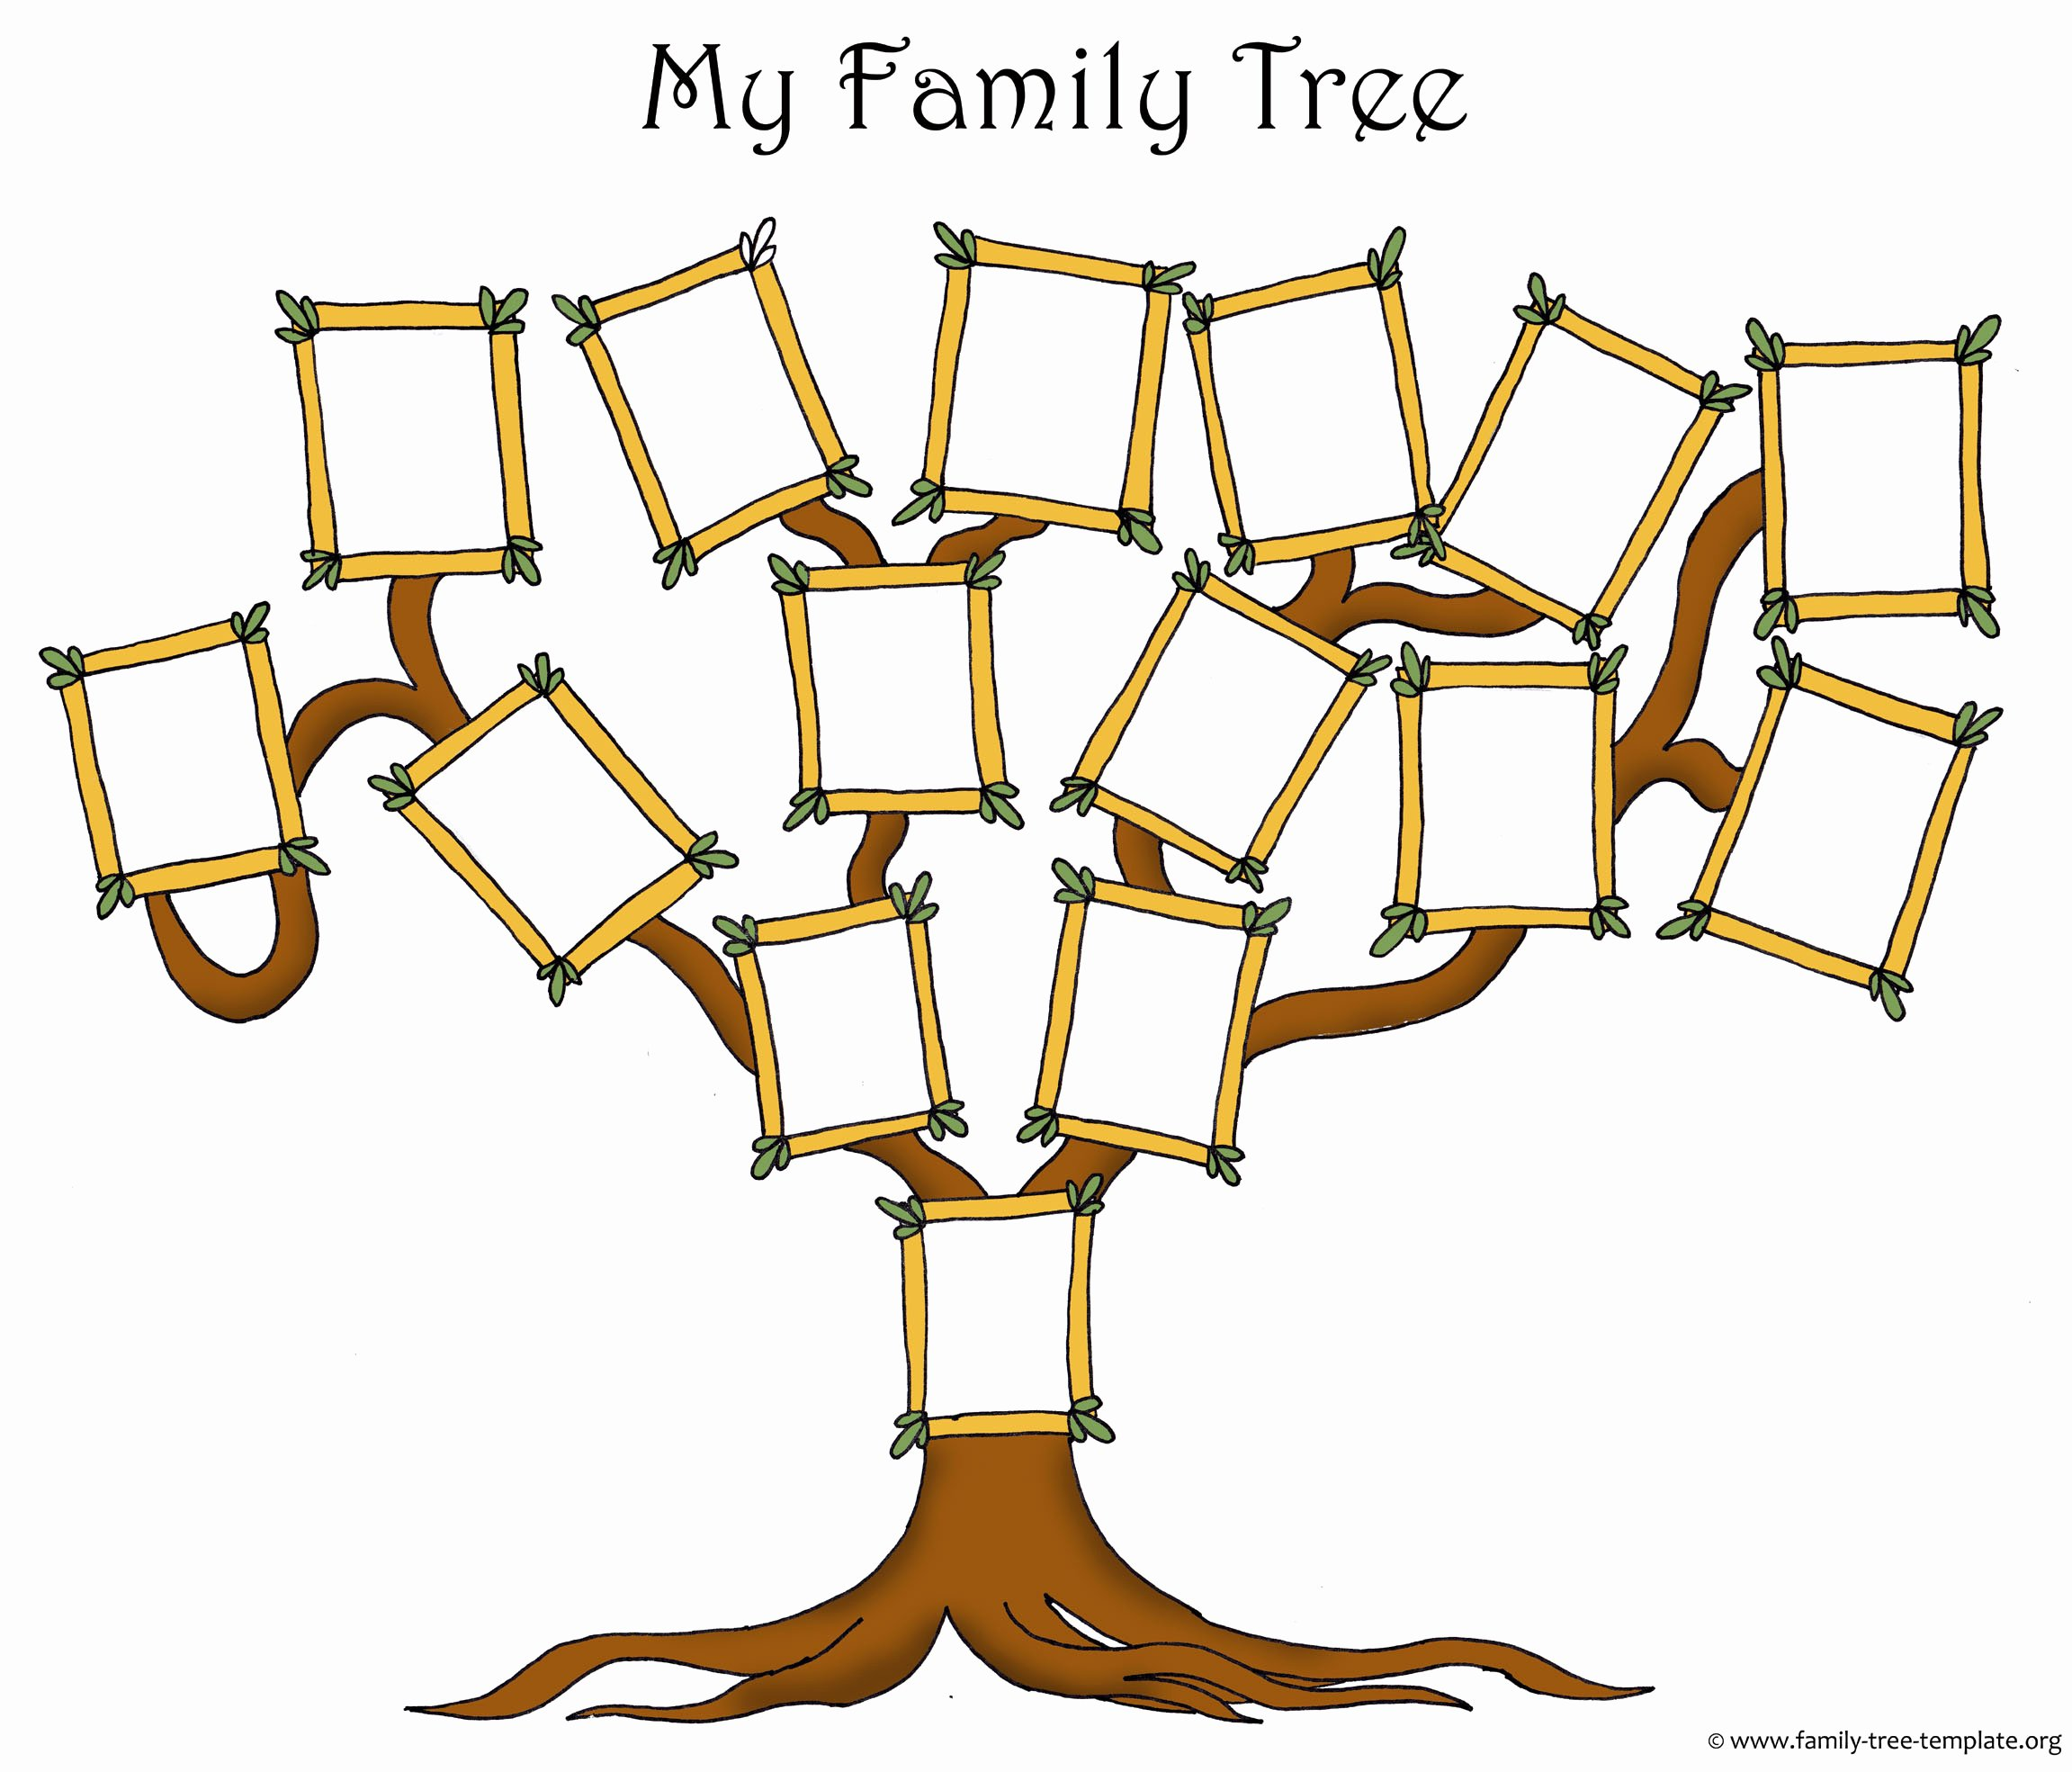 Printable Blank Family Tree New Free Family Tree Template Designs for Making Ancestry Charts